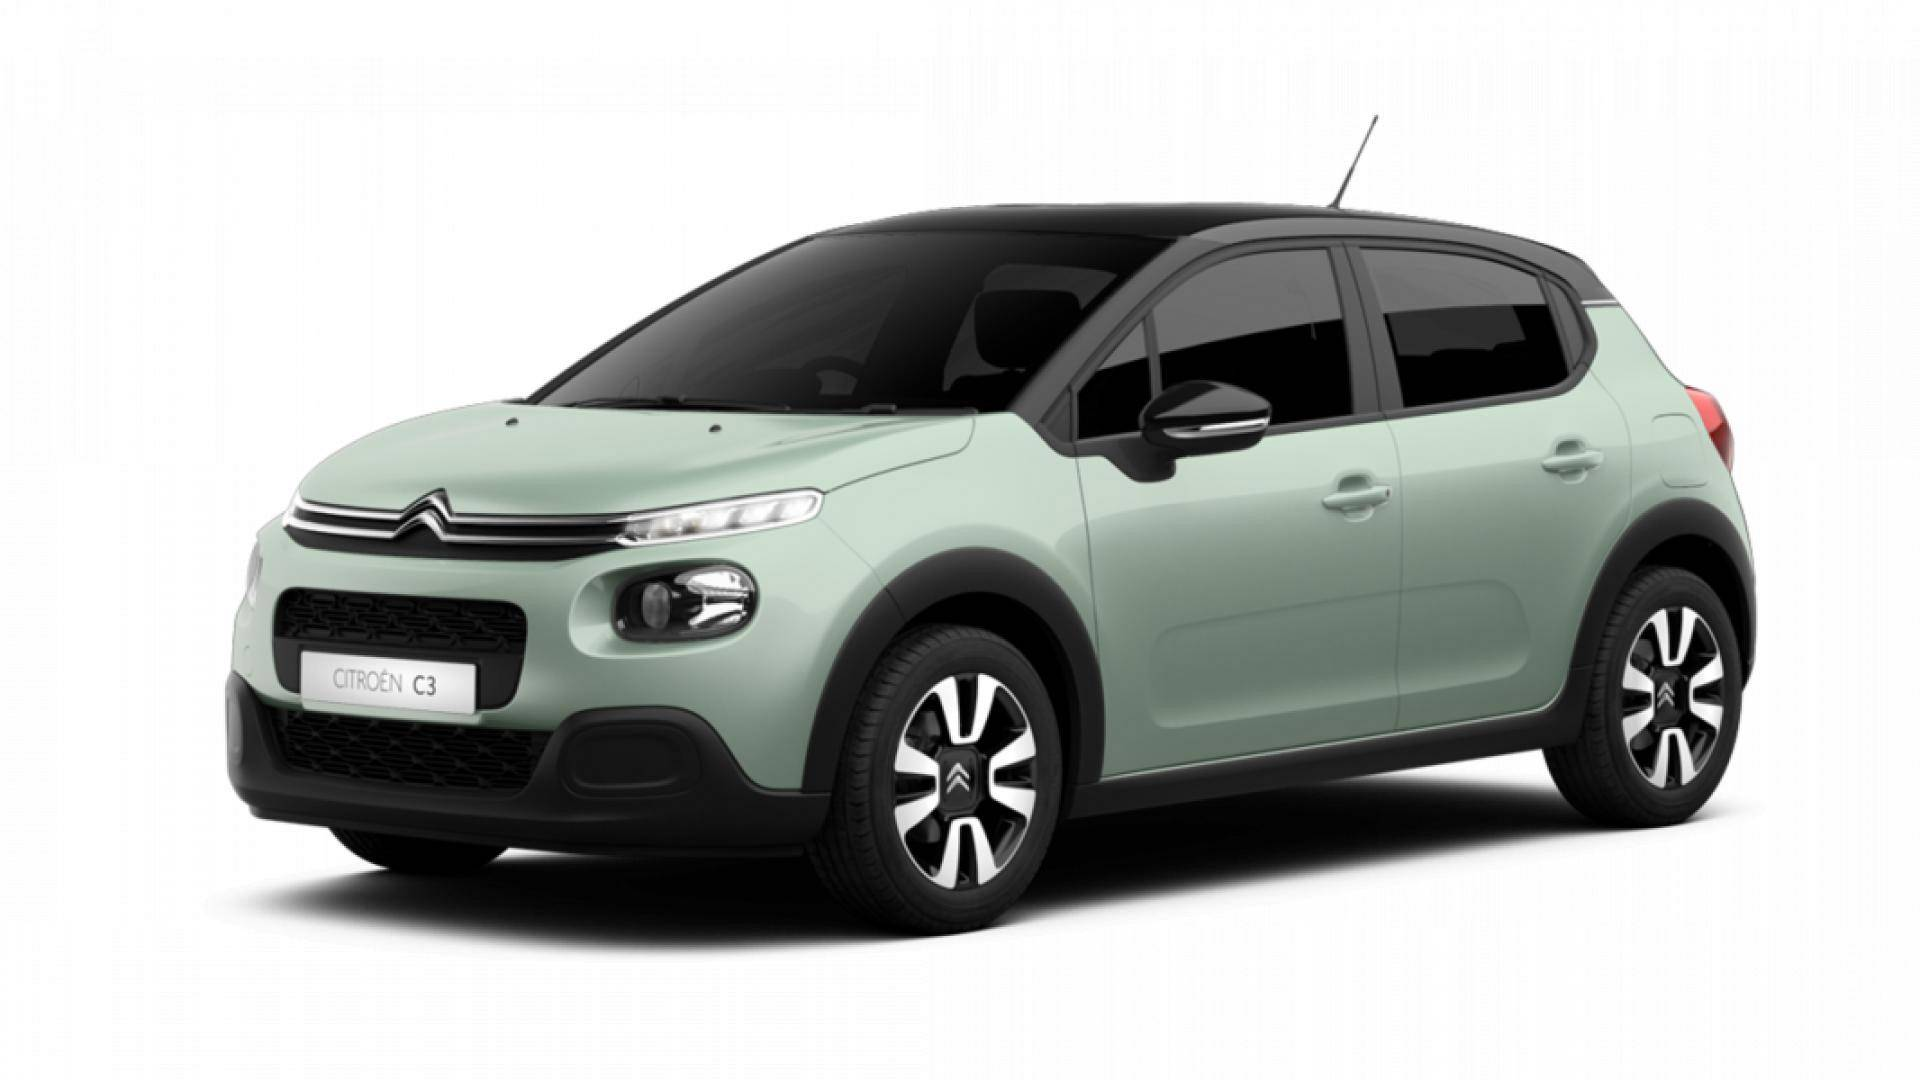 Citroen C3 Hatchback 1.2 PureTech 83 Feel Nav Edition 5dr [2019]